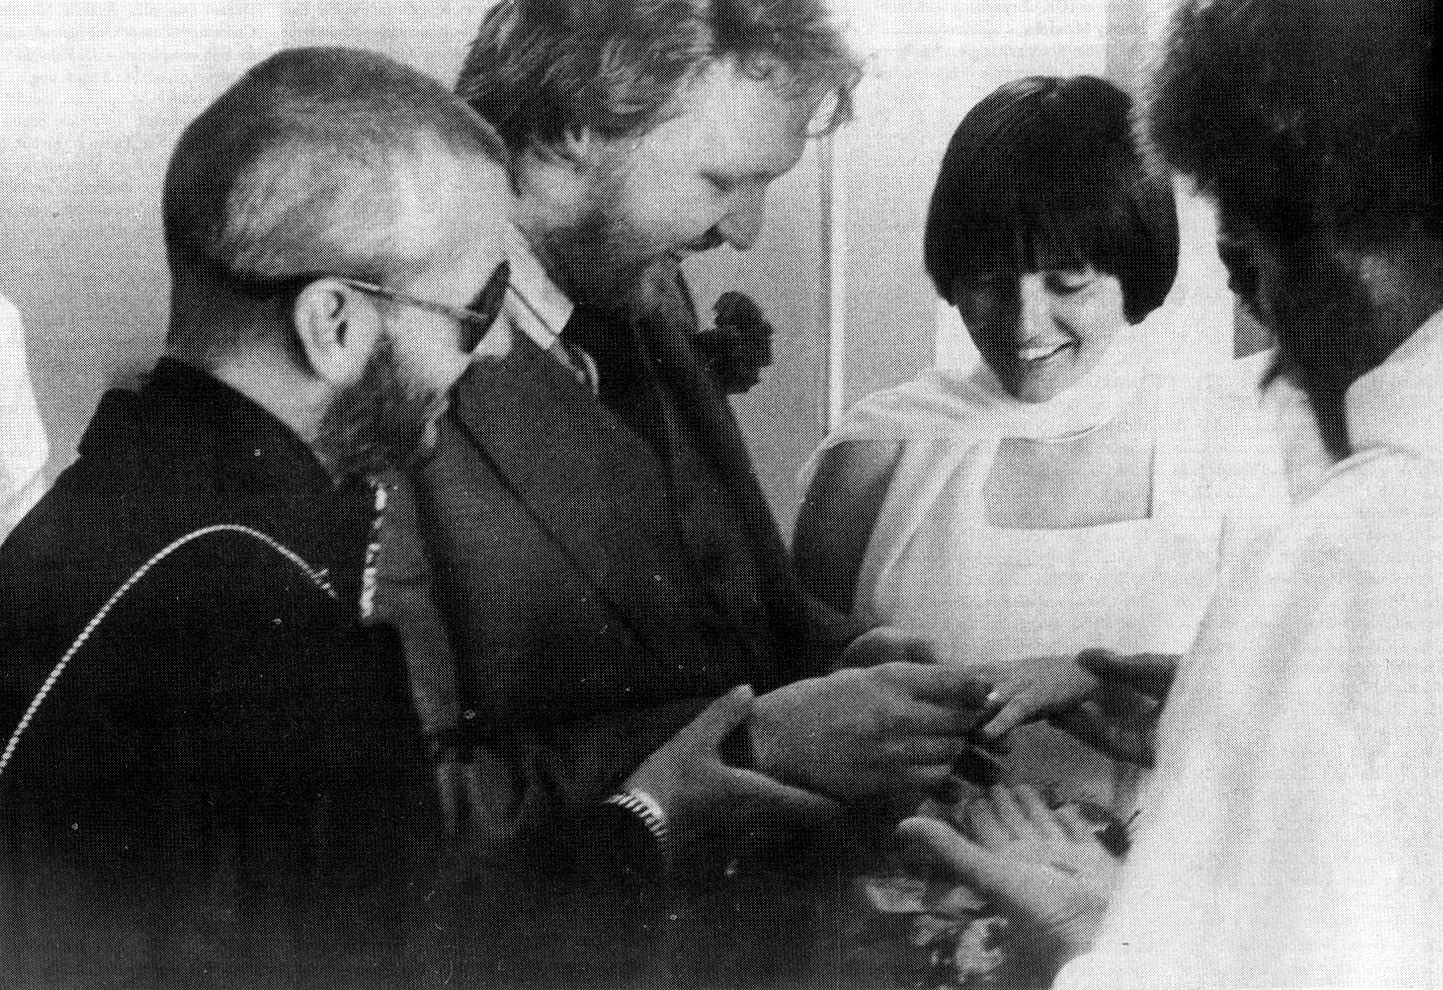 Harry marries Una with Ringo standing up for Harry